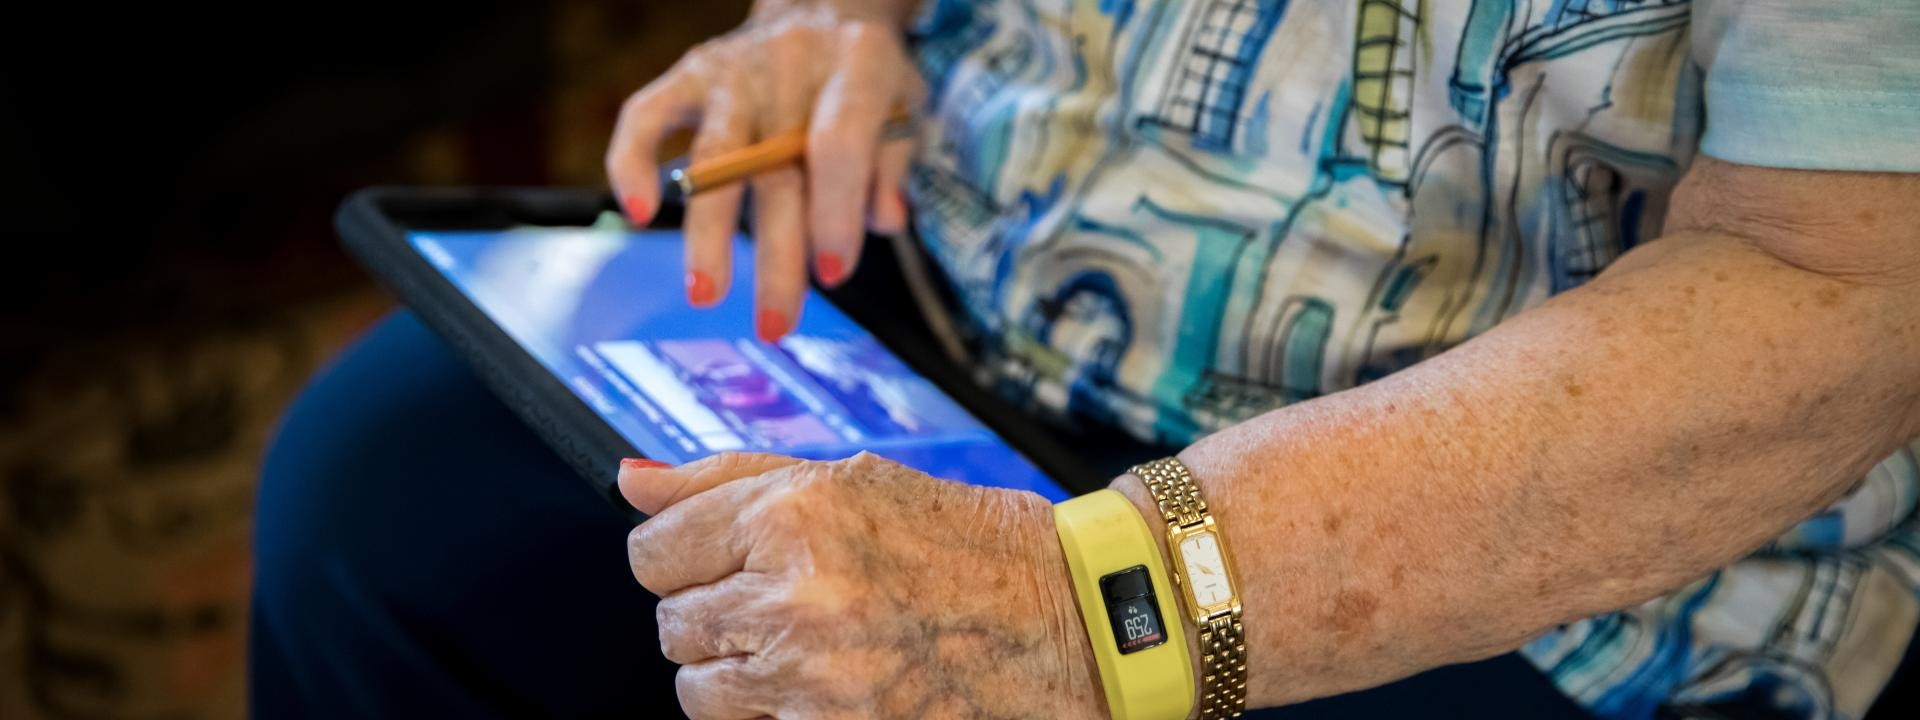 Resident using her iPad and wearing a smart watch.